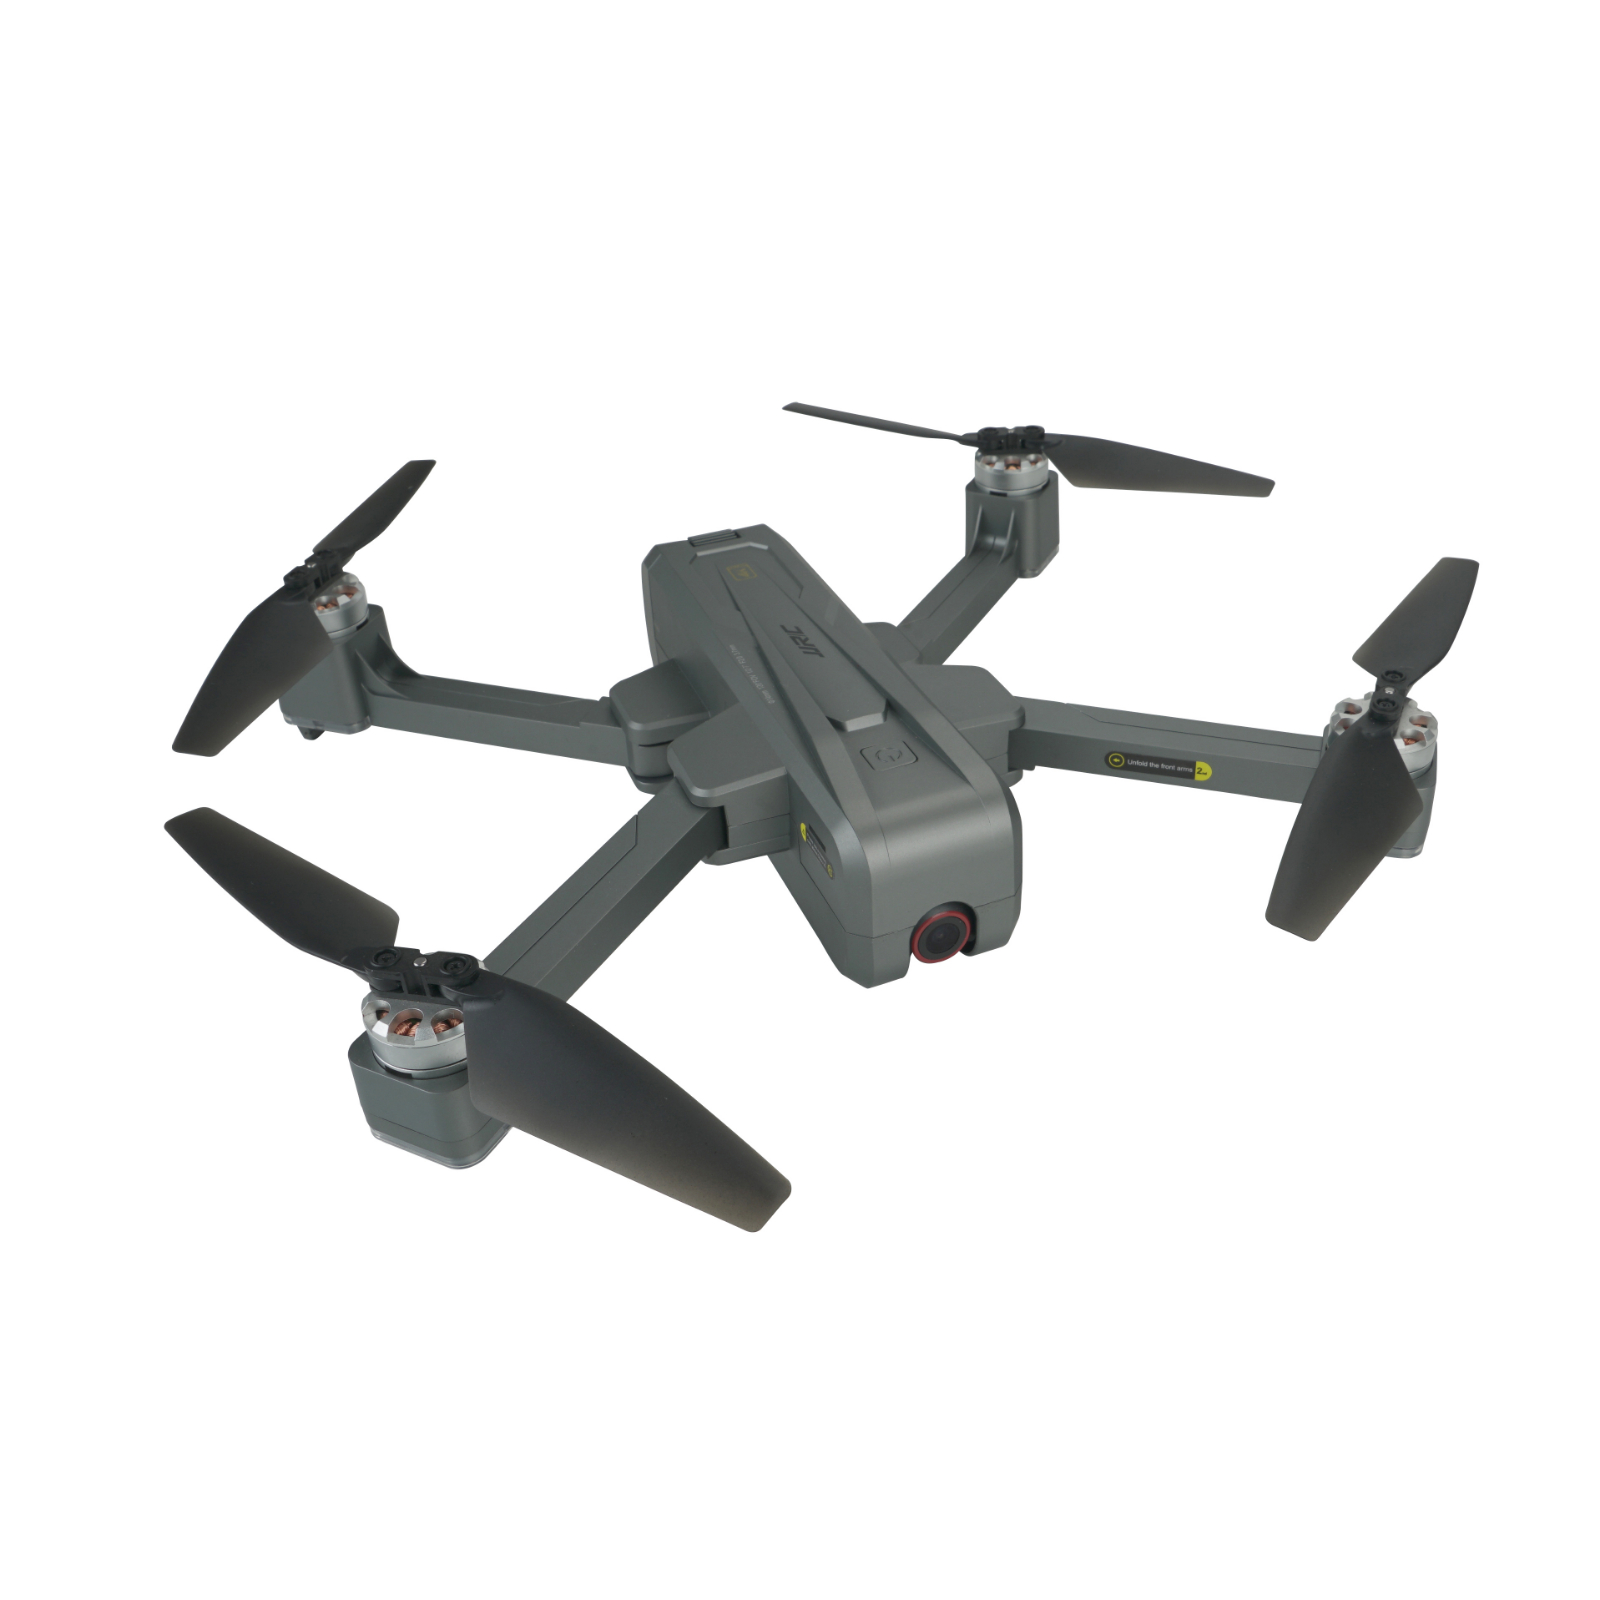 5G WI-FI GPS FOLDABLE BRUSHLESS DRONE WITH OPTICAL FLOW POSITING